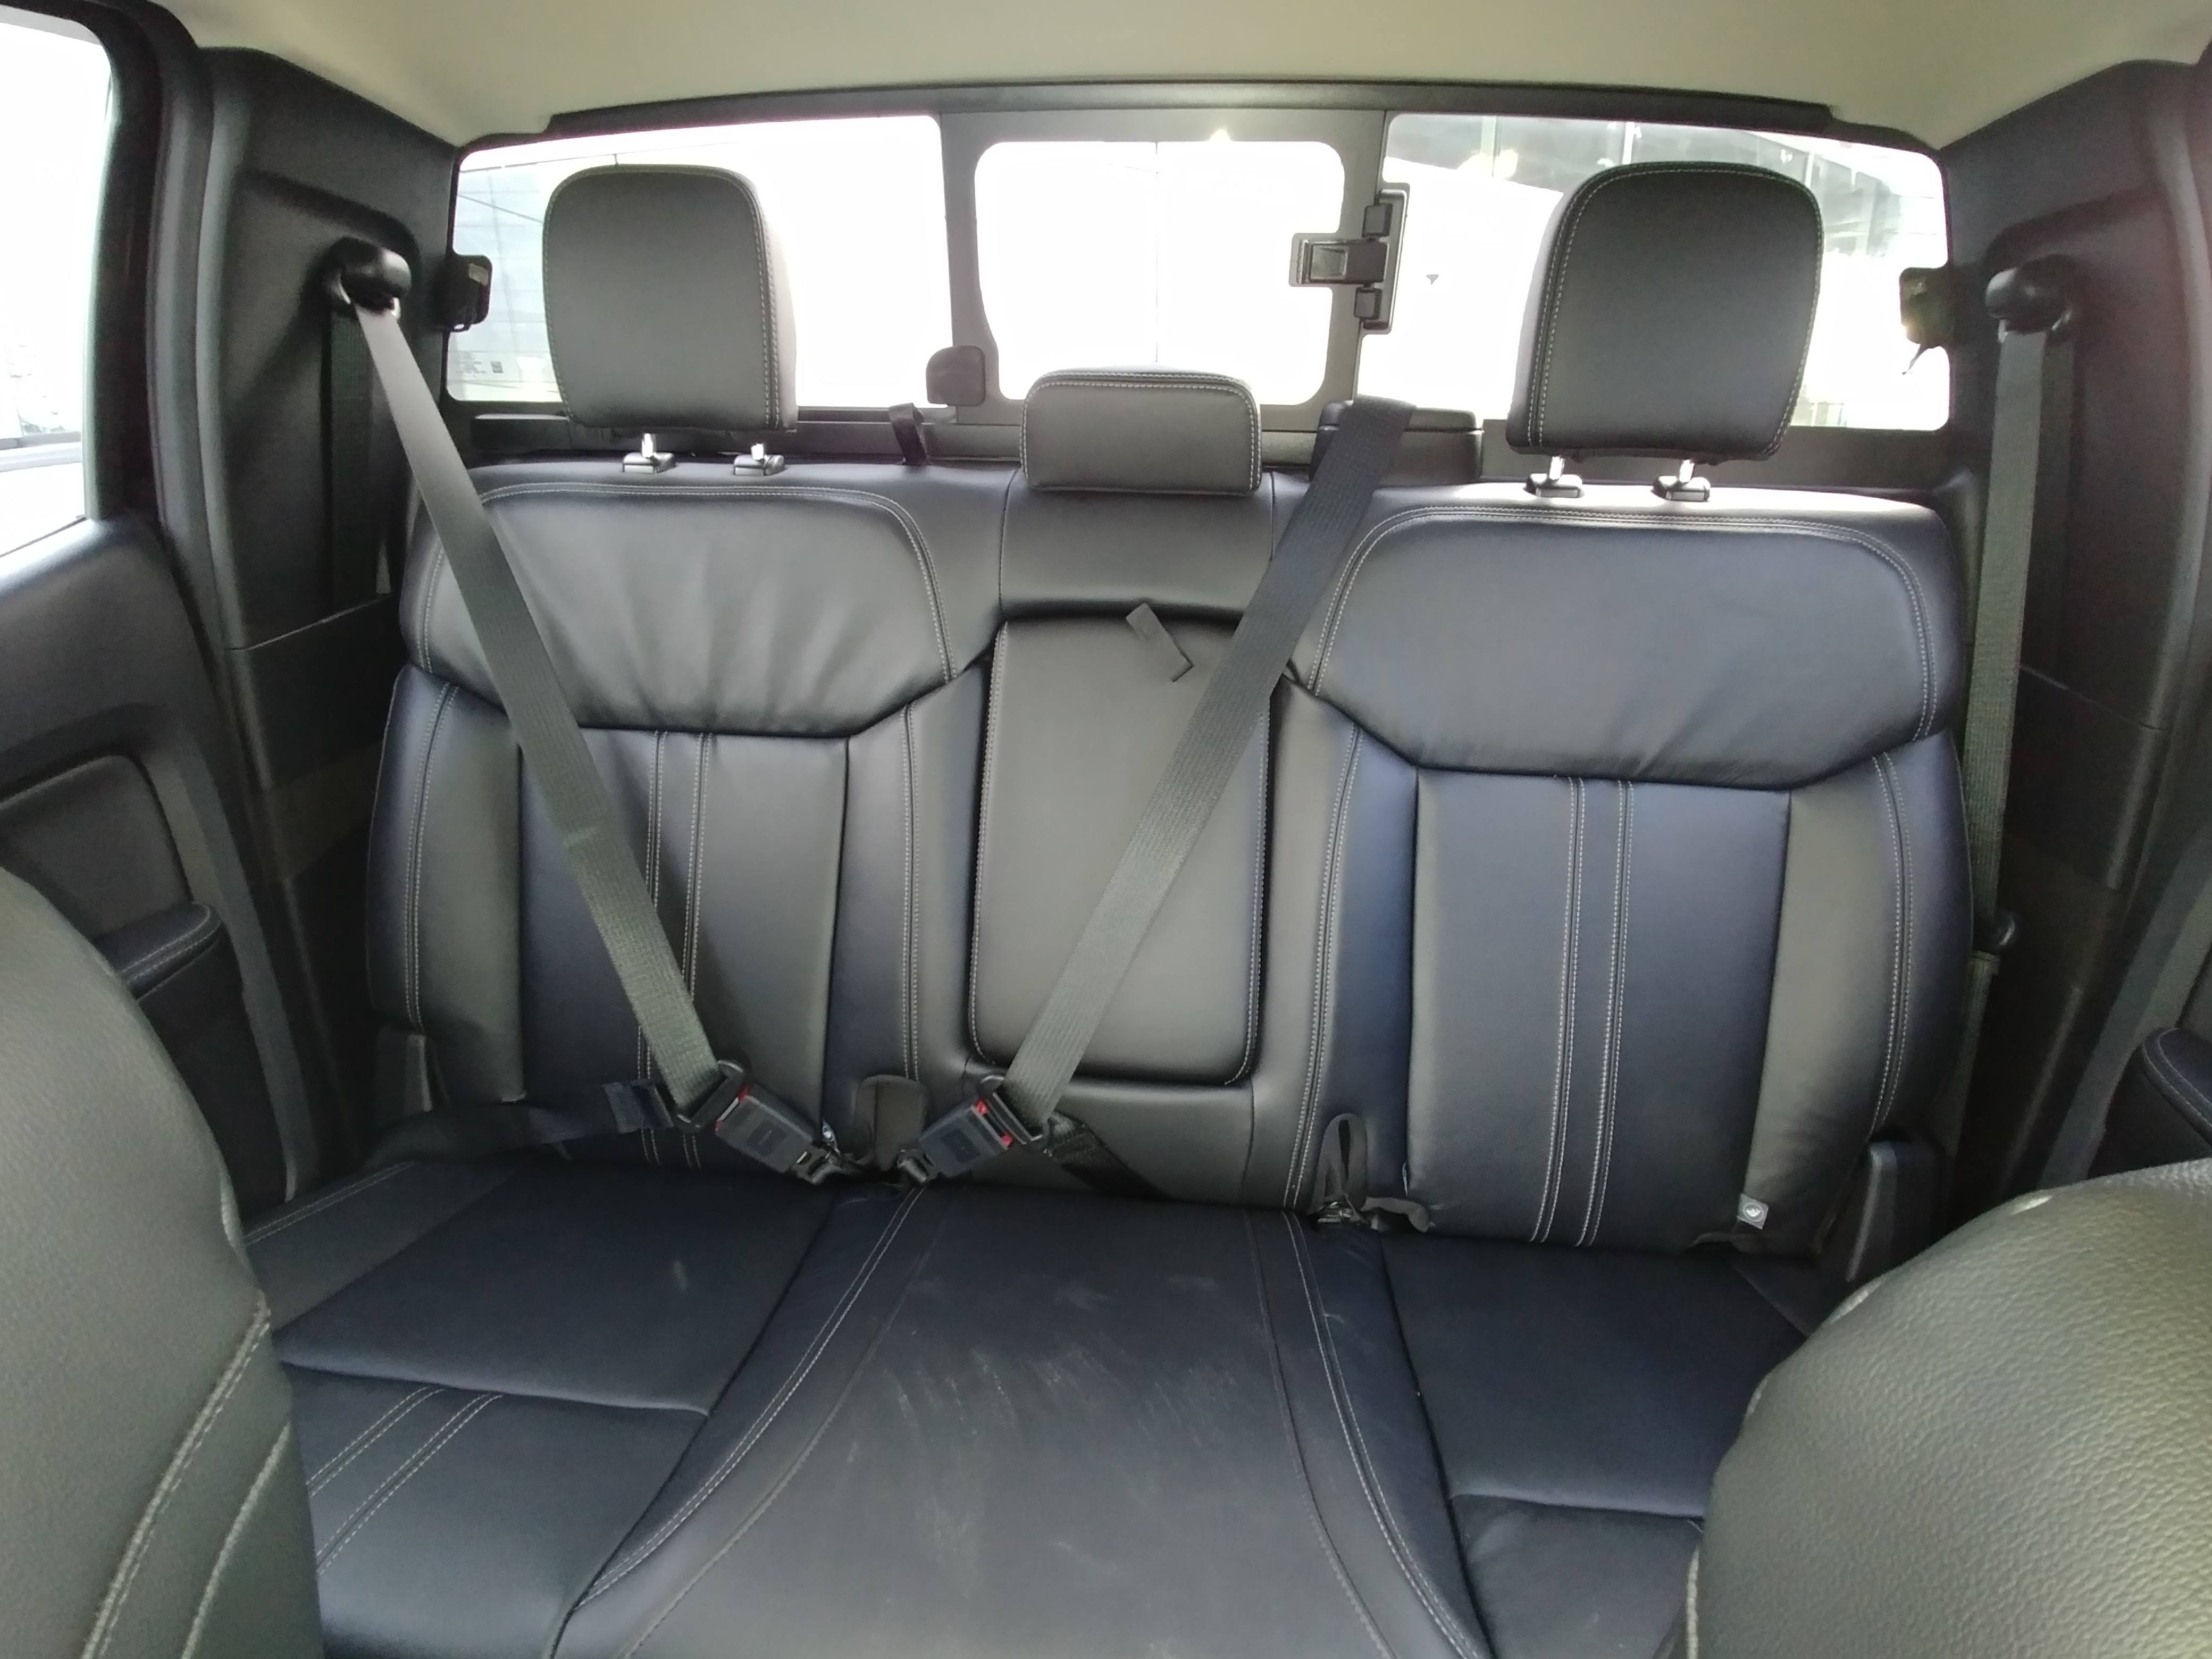 New 2019 Ranger back interior